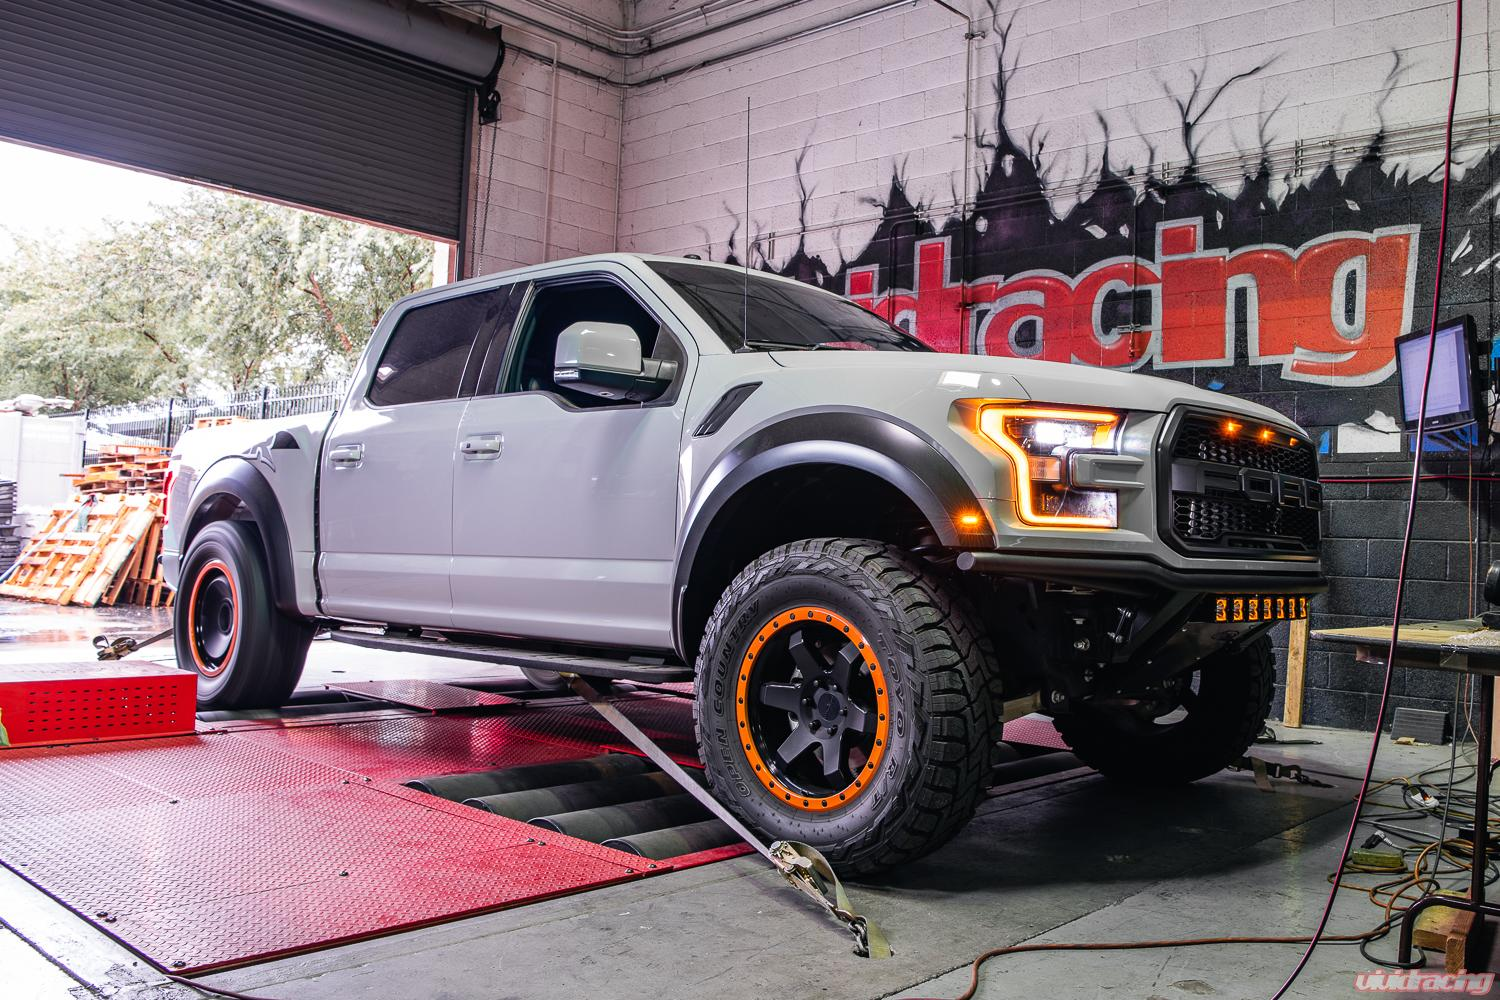 Vr Tuned Ecu Flash Tune Ford Raptor 3 5l Ecoboost 450hp Vrt Frd